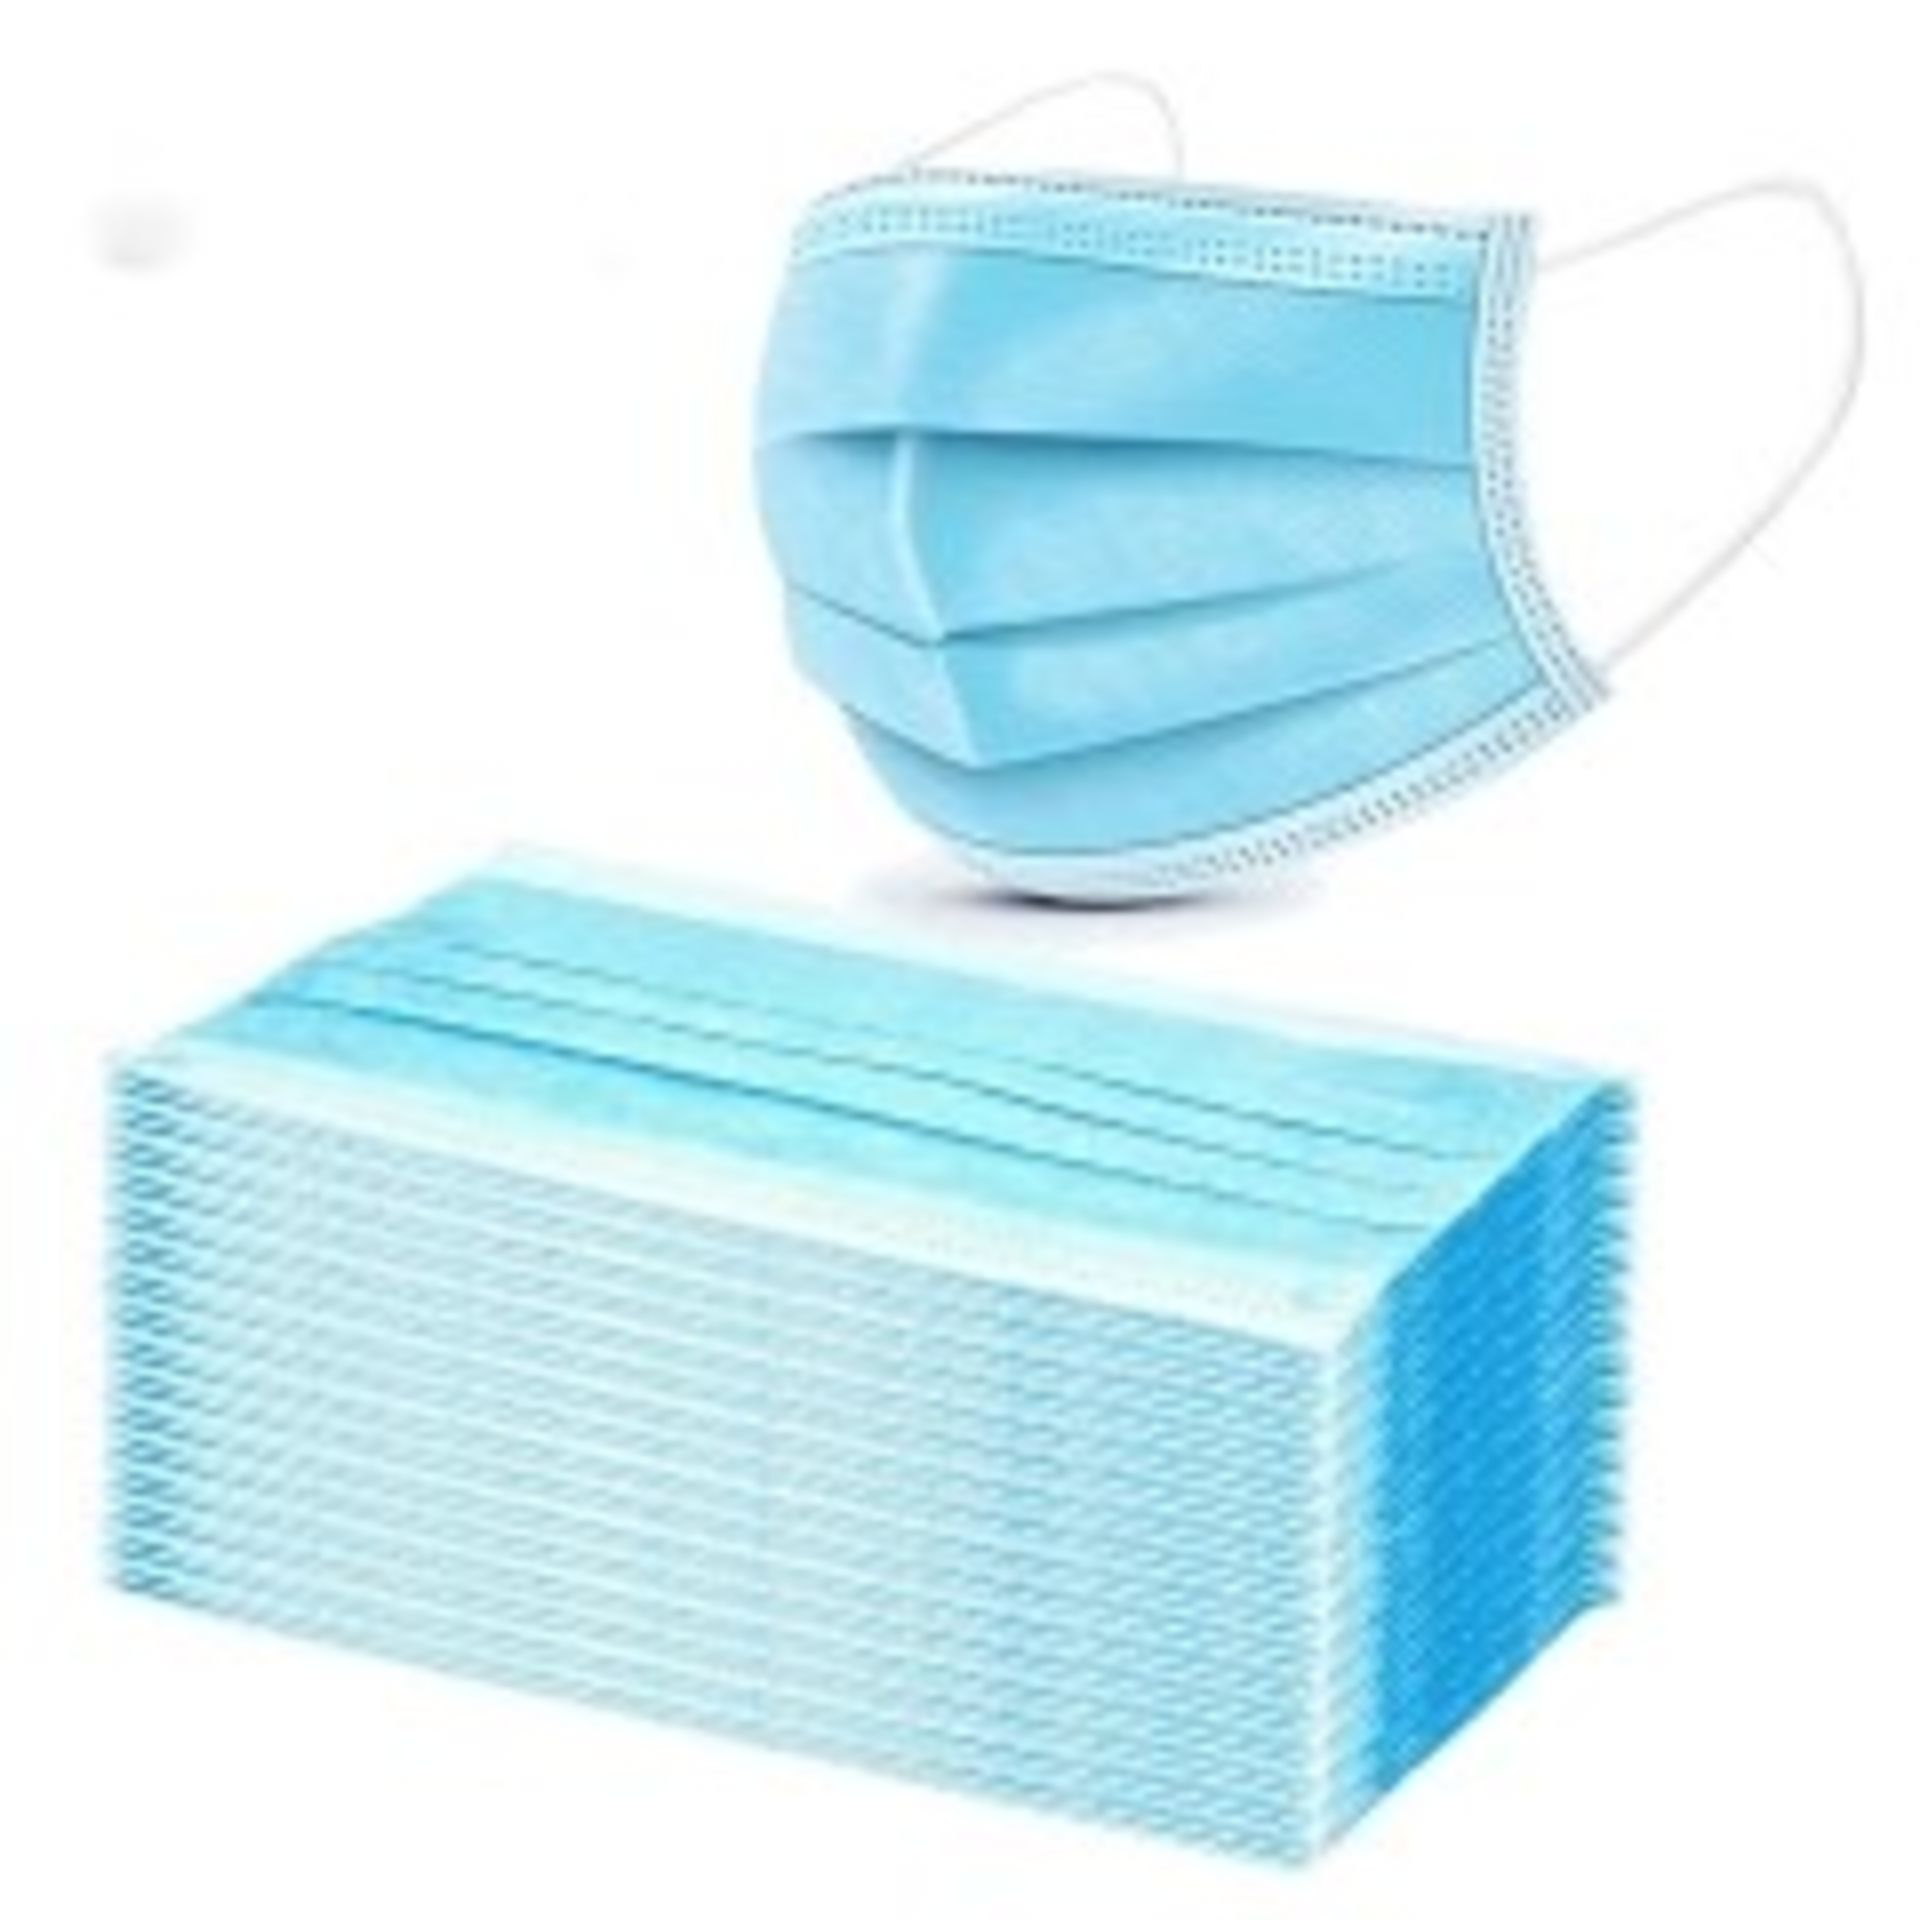 100 IN TOTAL 3 X PLY DISPOSABLE FACE MASKS *NO VAT*